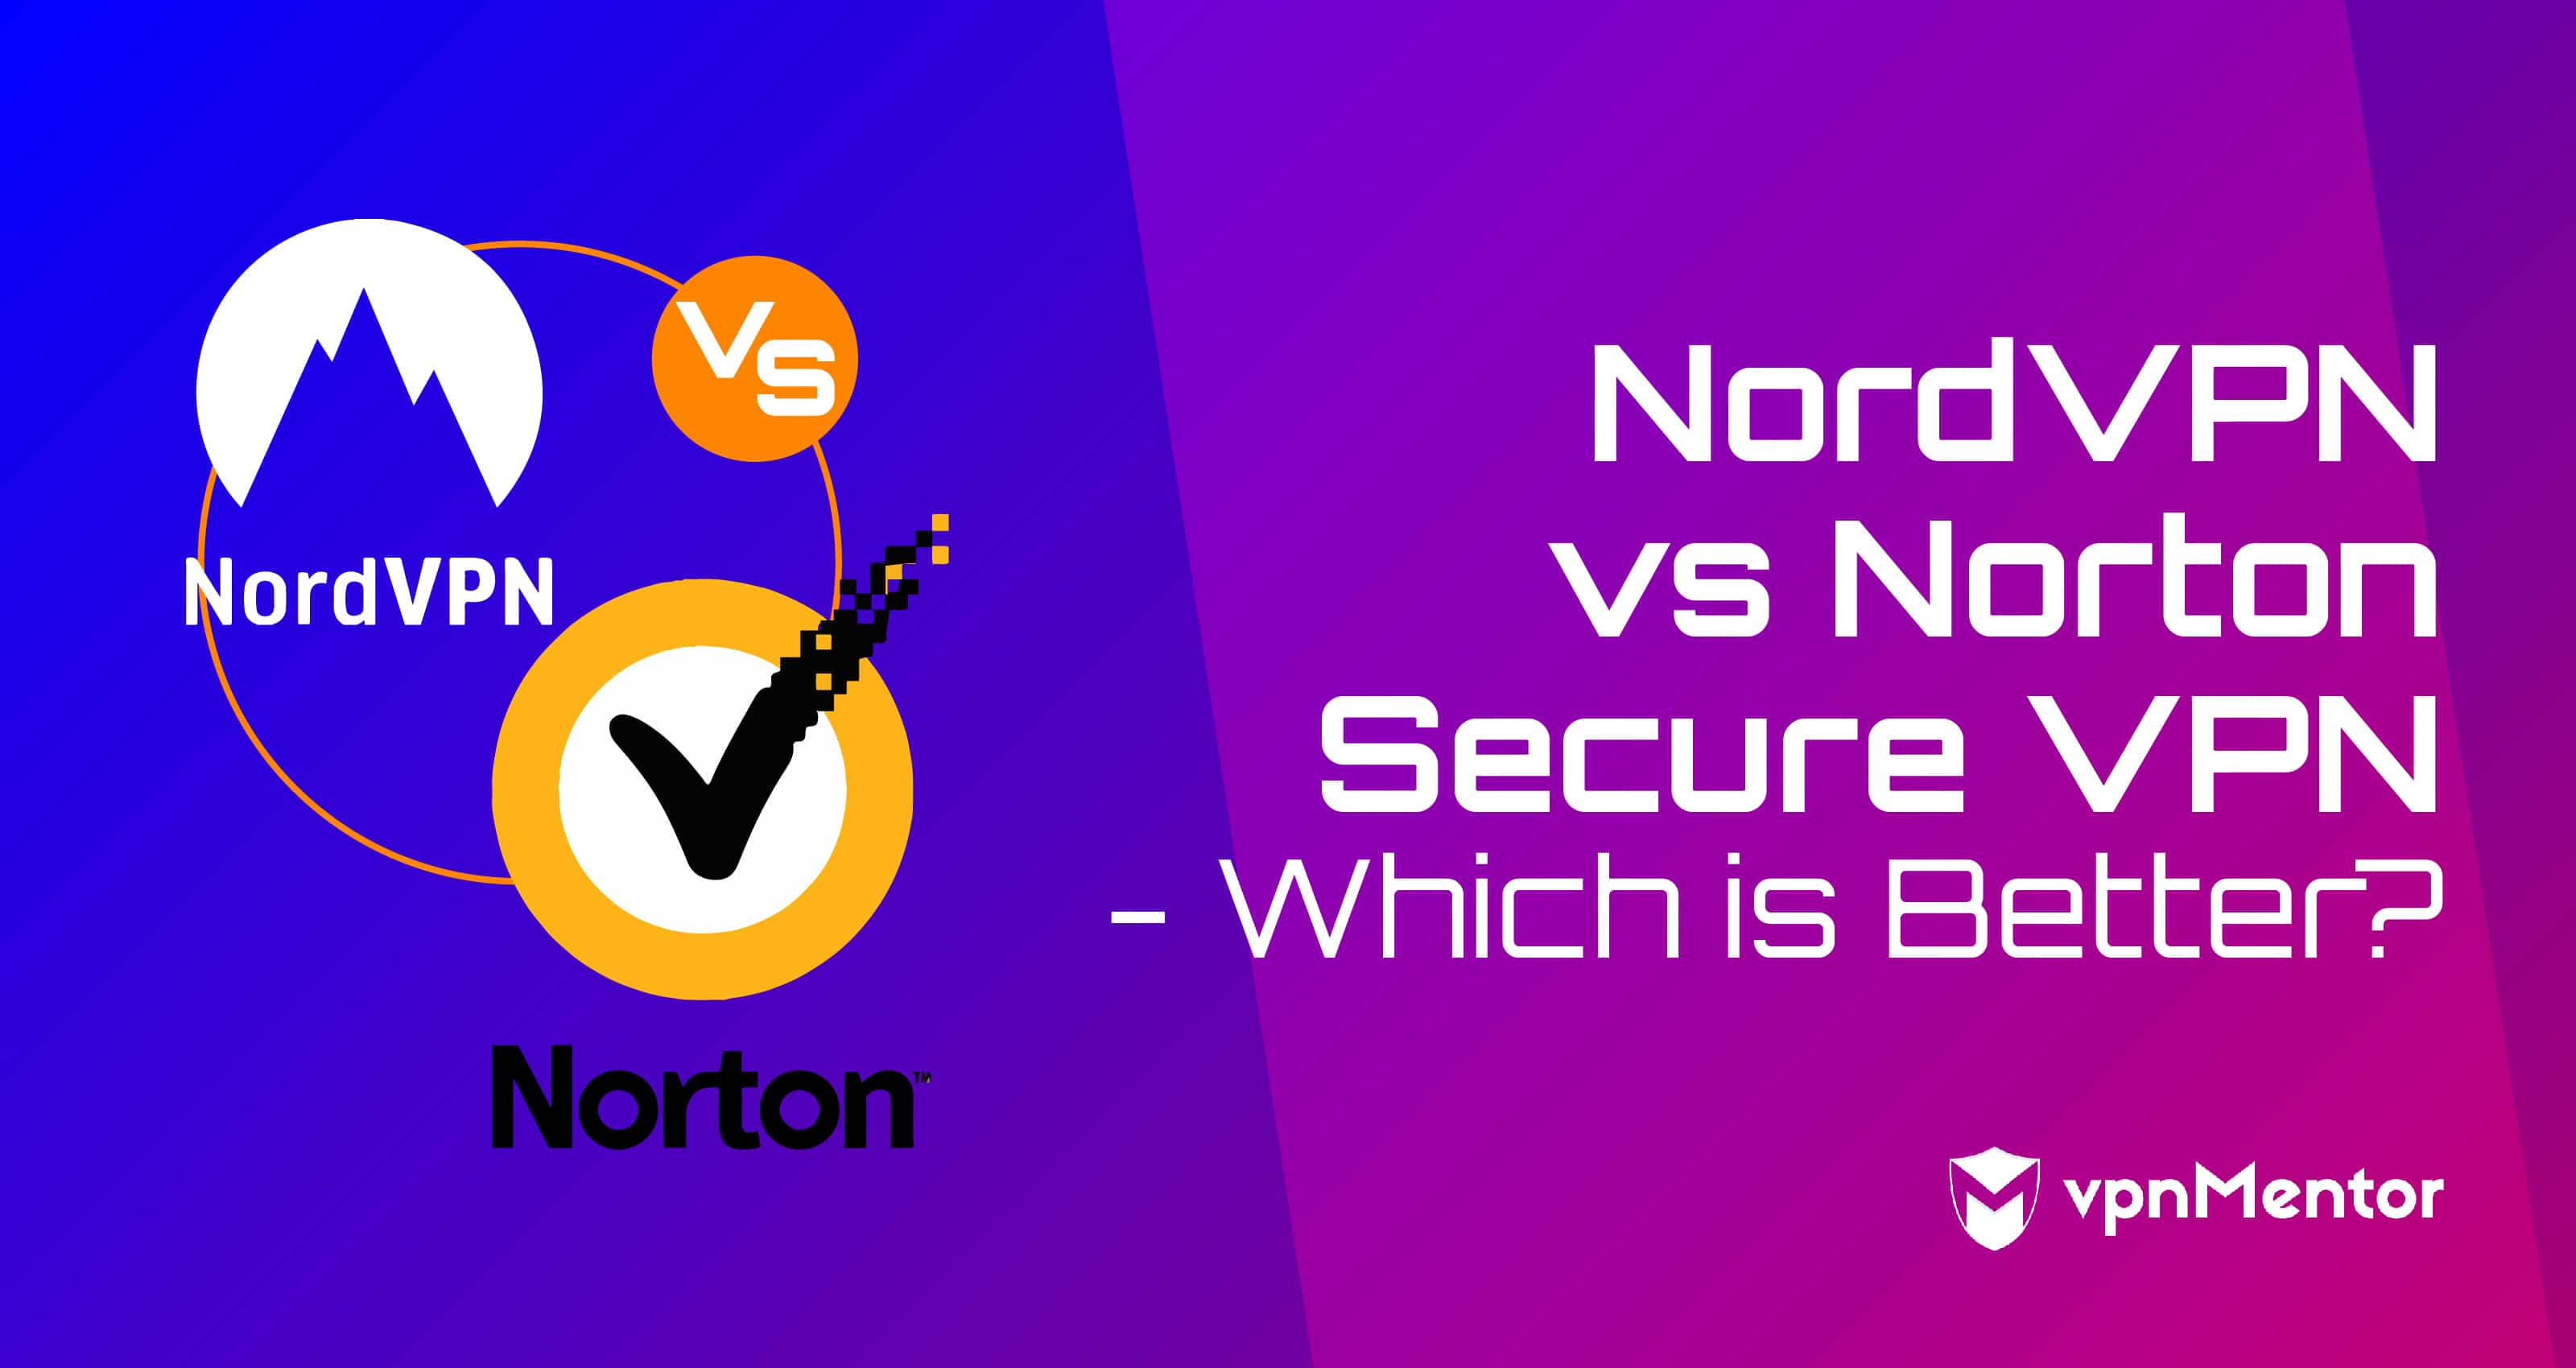 NordVPN vs Norton Secure VPN: Which Is Best For You in 2019?